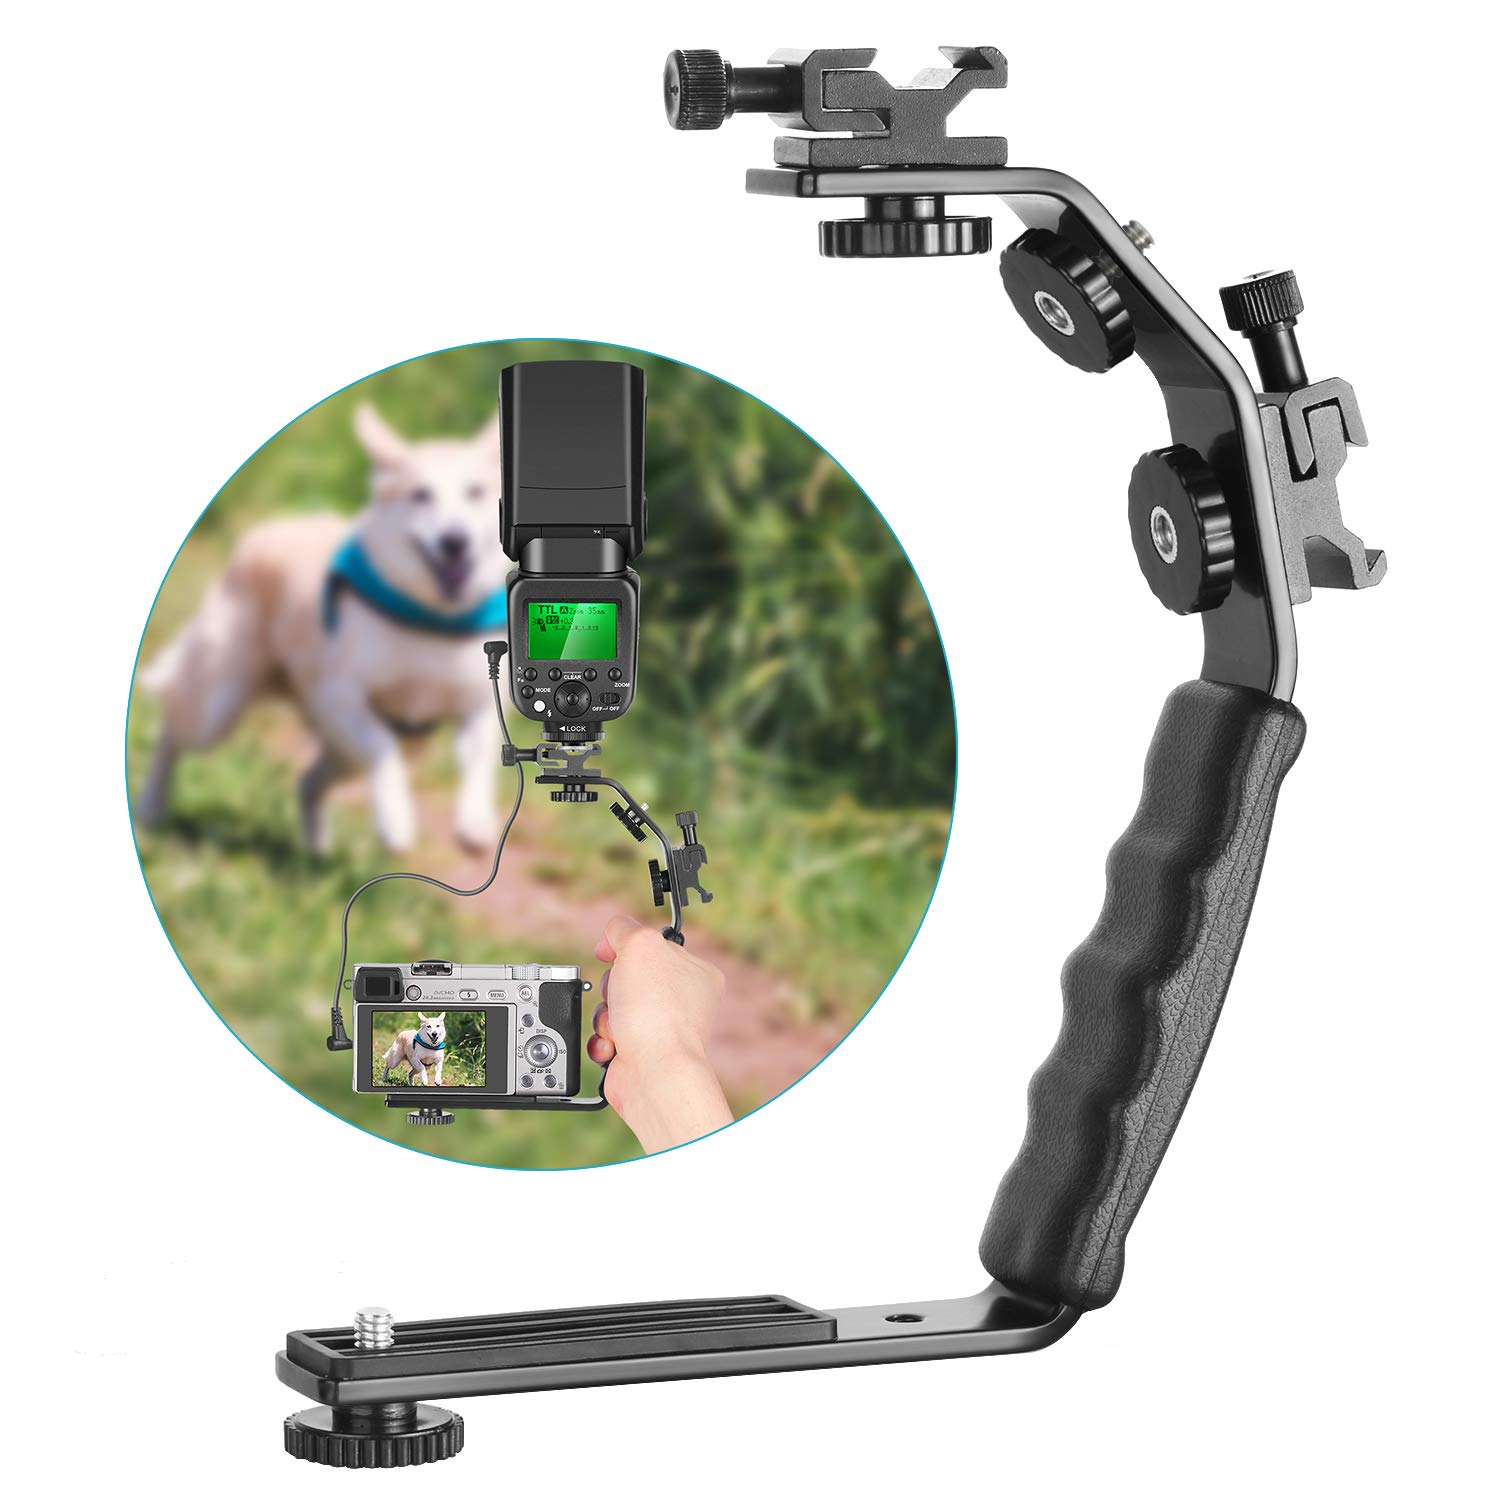 Neewer Camera Video L-Shape Flash Bracket with Dual Flash Cold Shoe Mount 1/4 inches Tripod Screw Versatile Handheld for Camera Camcorder Video Shooting and Product Photography by Neewer